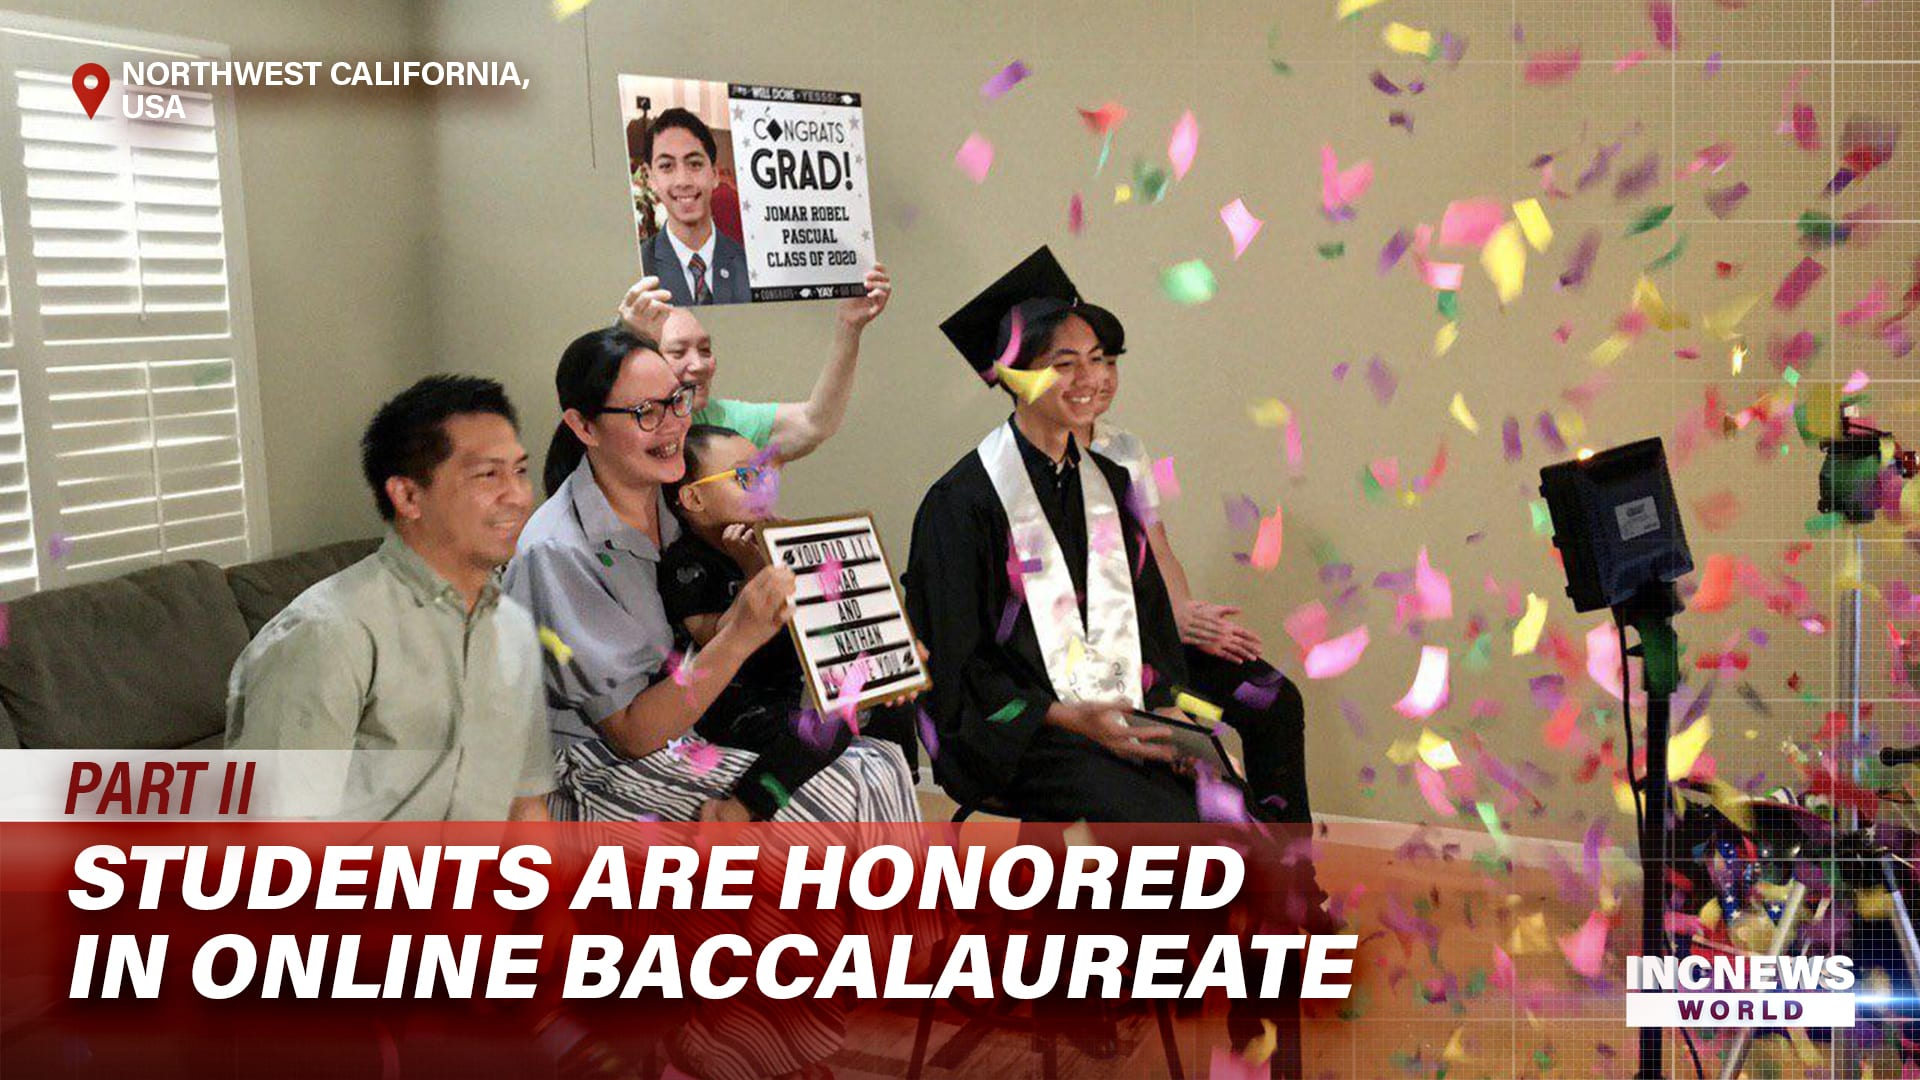 Students Honored in Online Baccalaureate